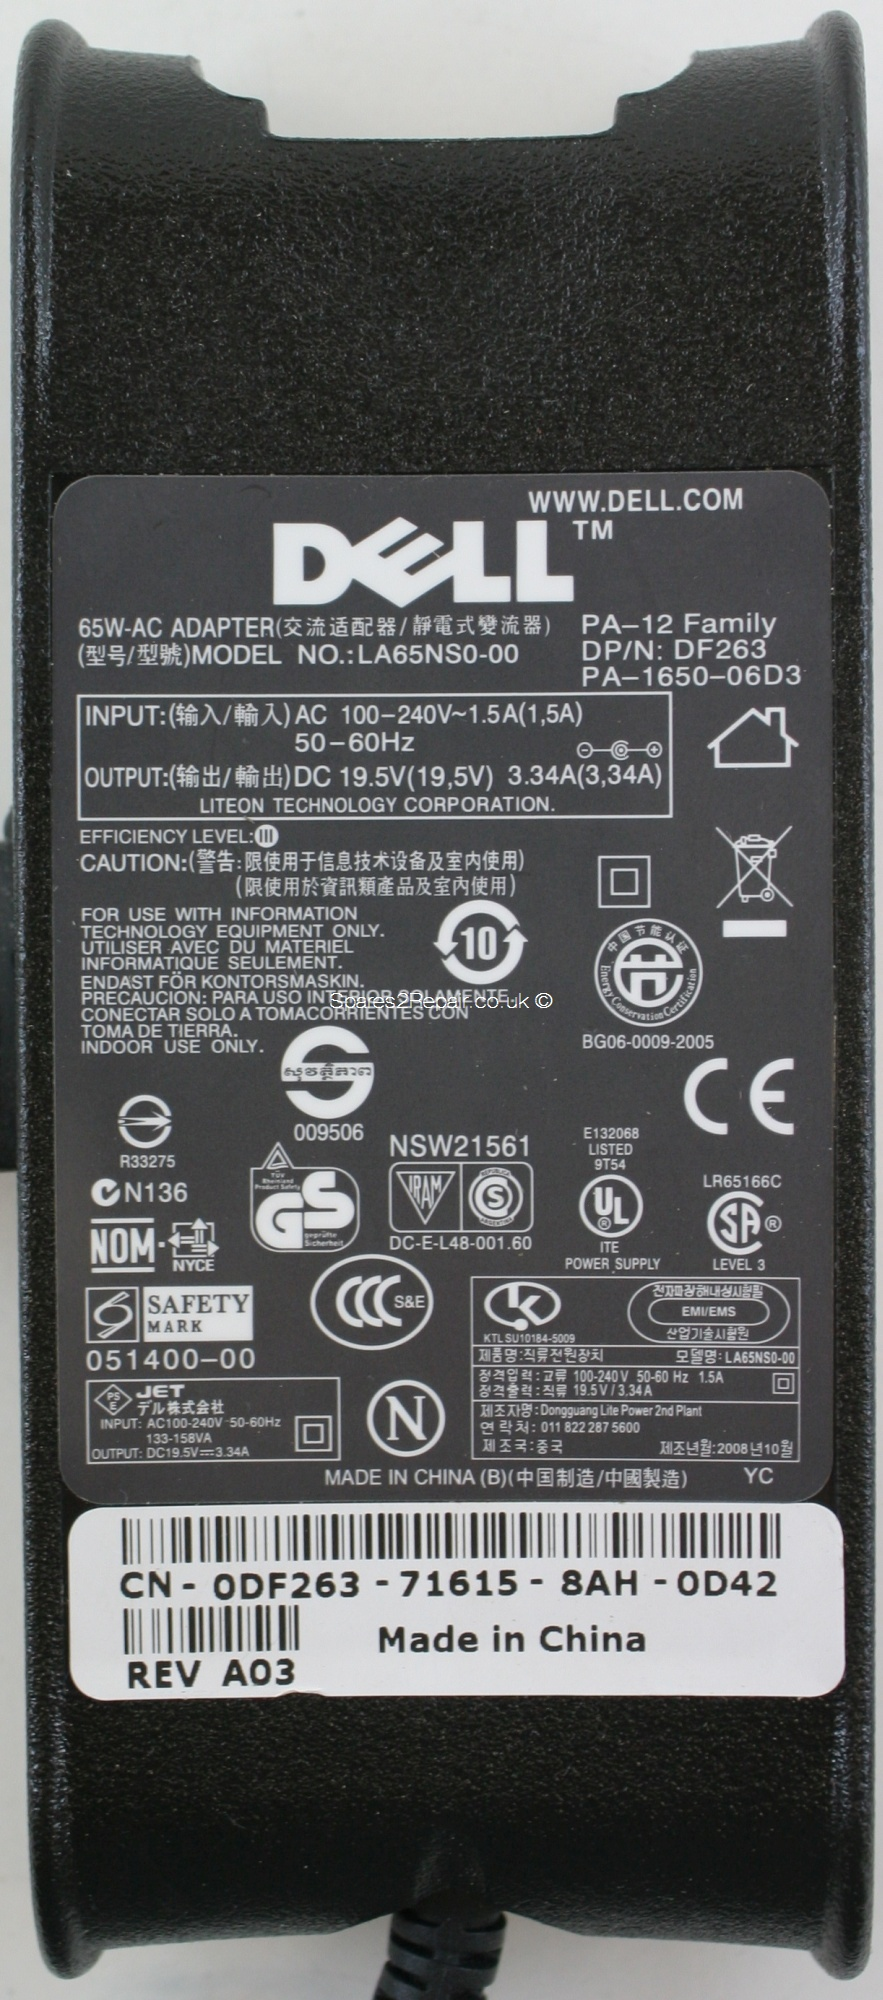 Dell - Charger - DF263 - Rev A03 - PA-1650-06D3 - LA65NS0-00 - 19.5v 3.34A (Original)